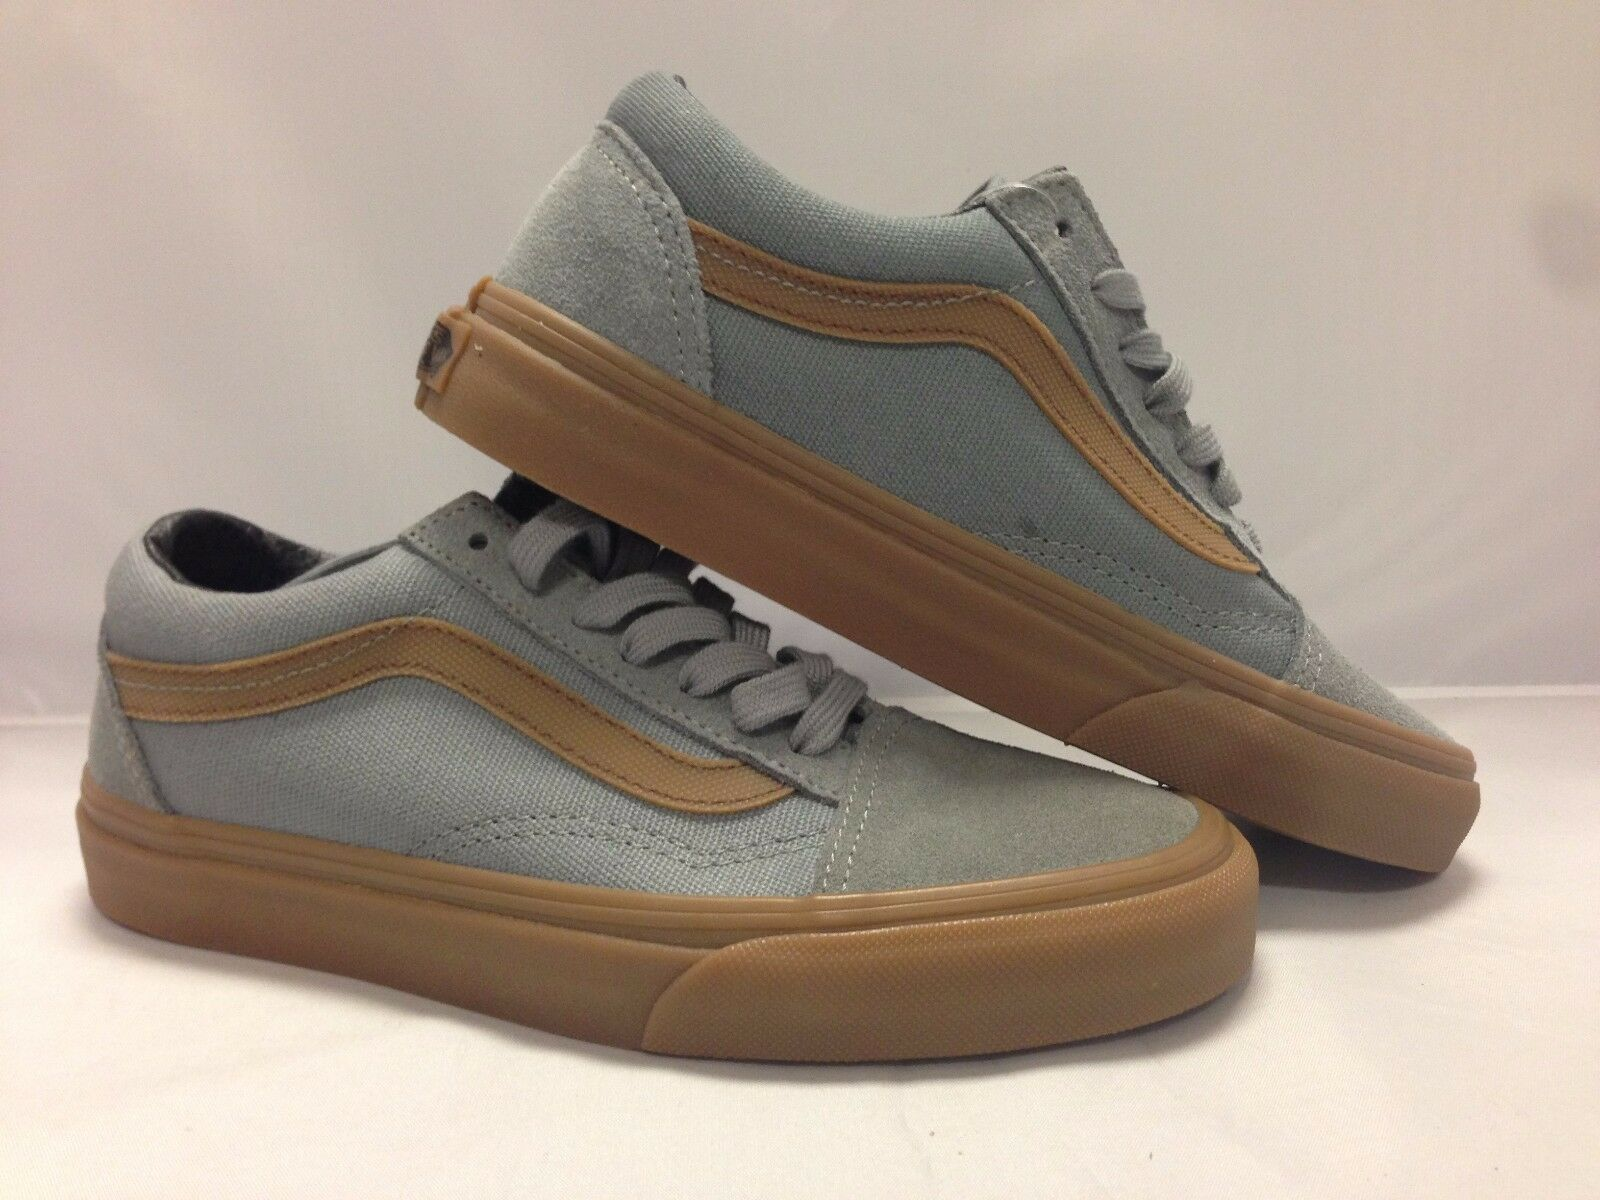 Vans Men's shoes Old Skool ''Gum Sidestripes'' Monument